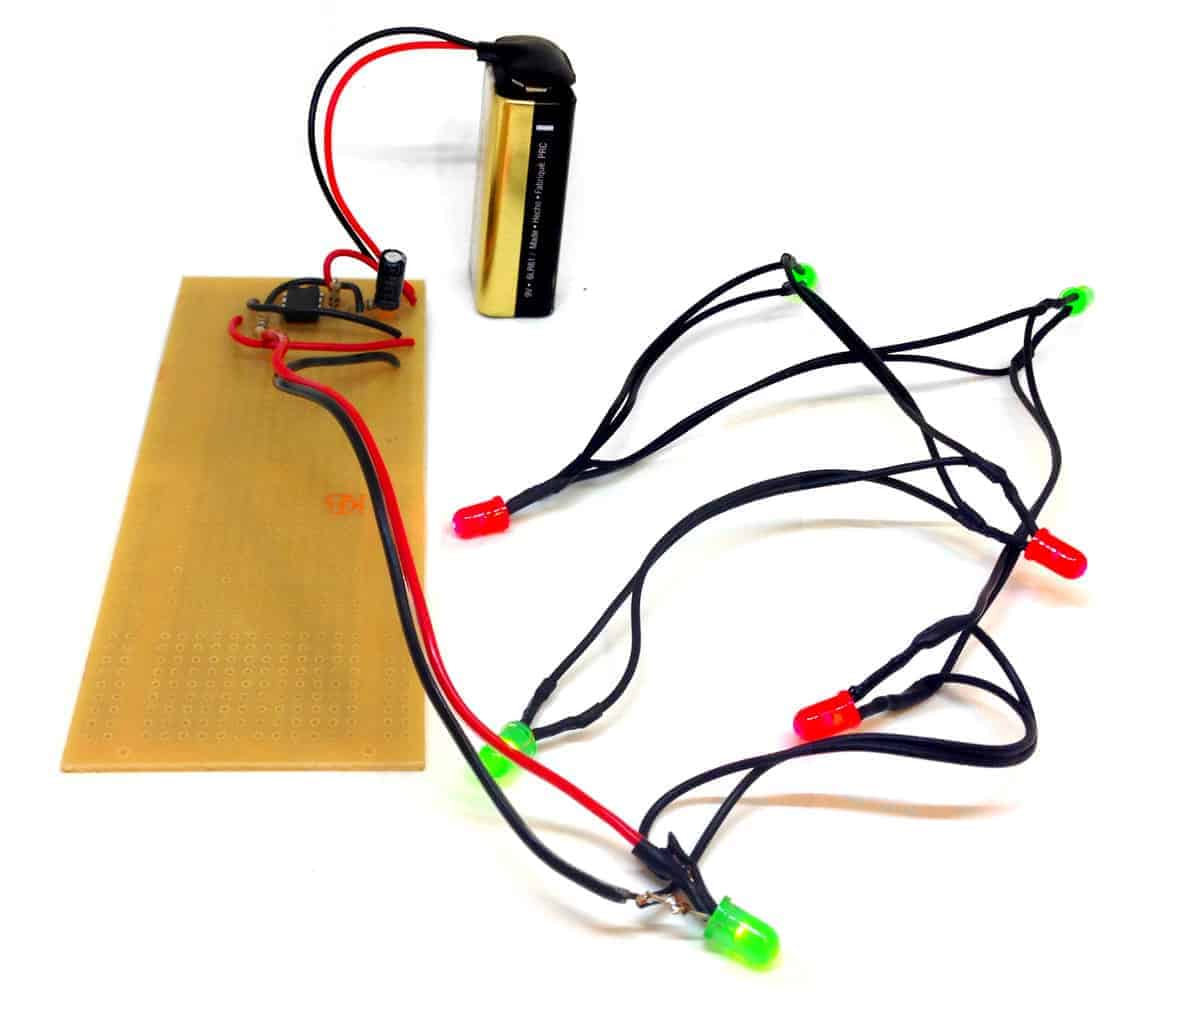 Blinking christmas lights build electronic circuits blinking christmas lights circuit asfbconference2016 Image collections